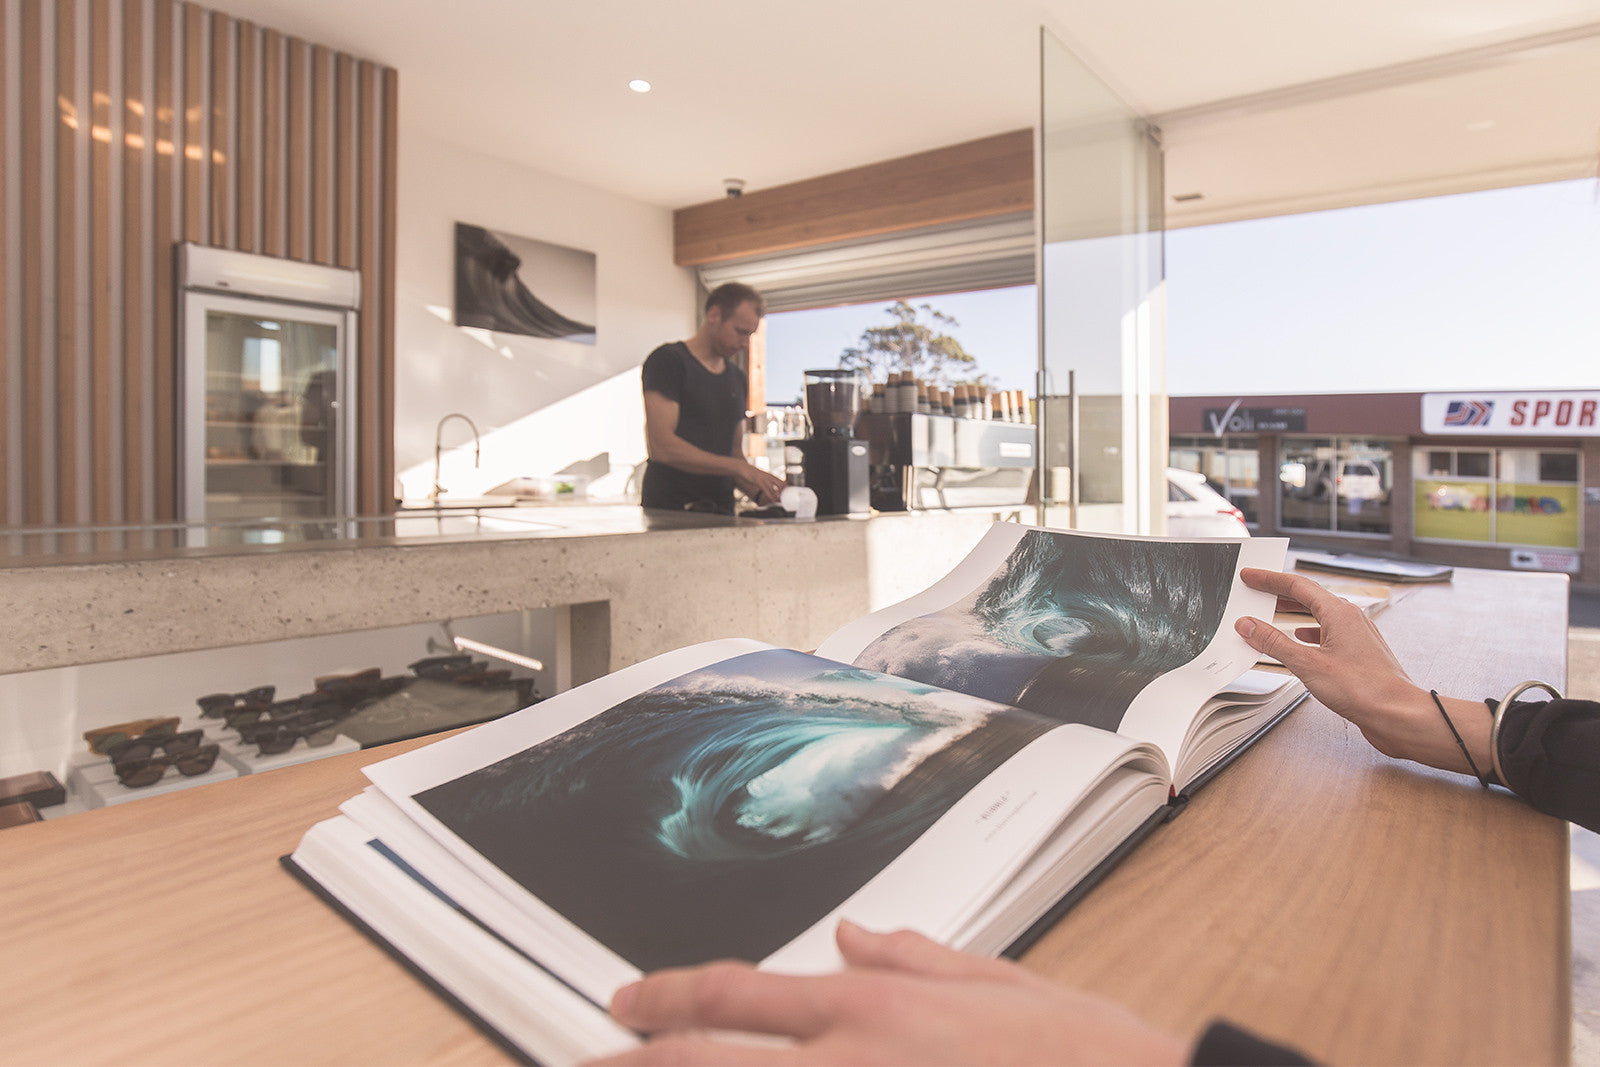 Thurston Photo book in Craft Surf Lifestyle Cafe in Ulladulla